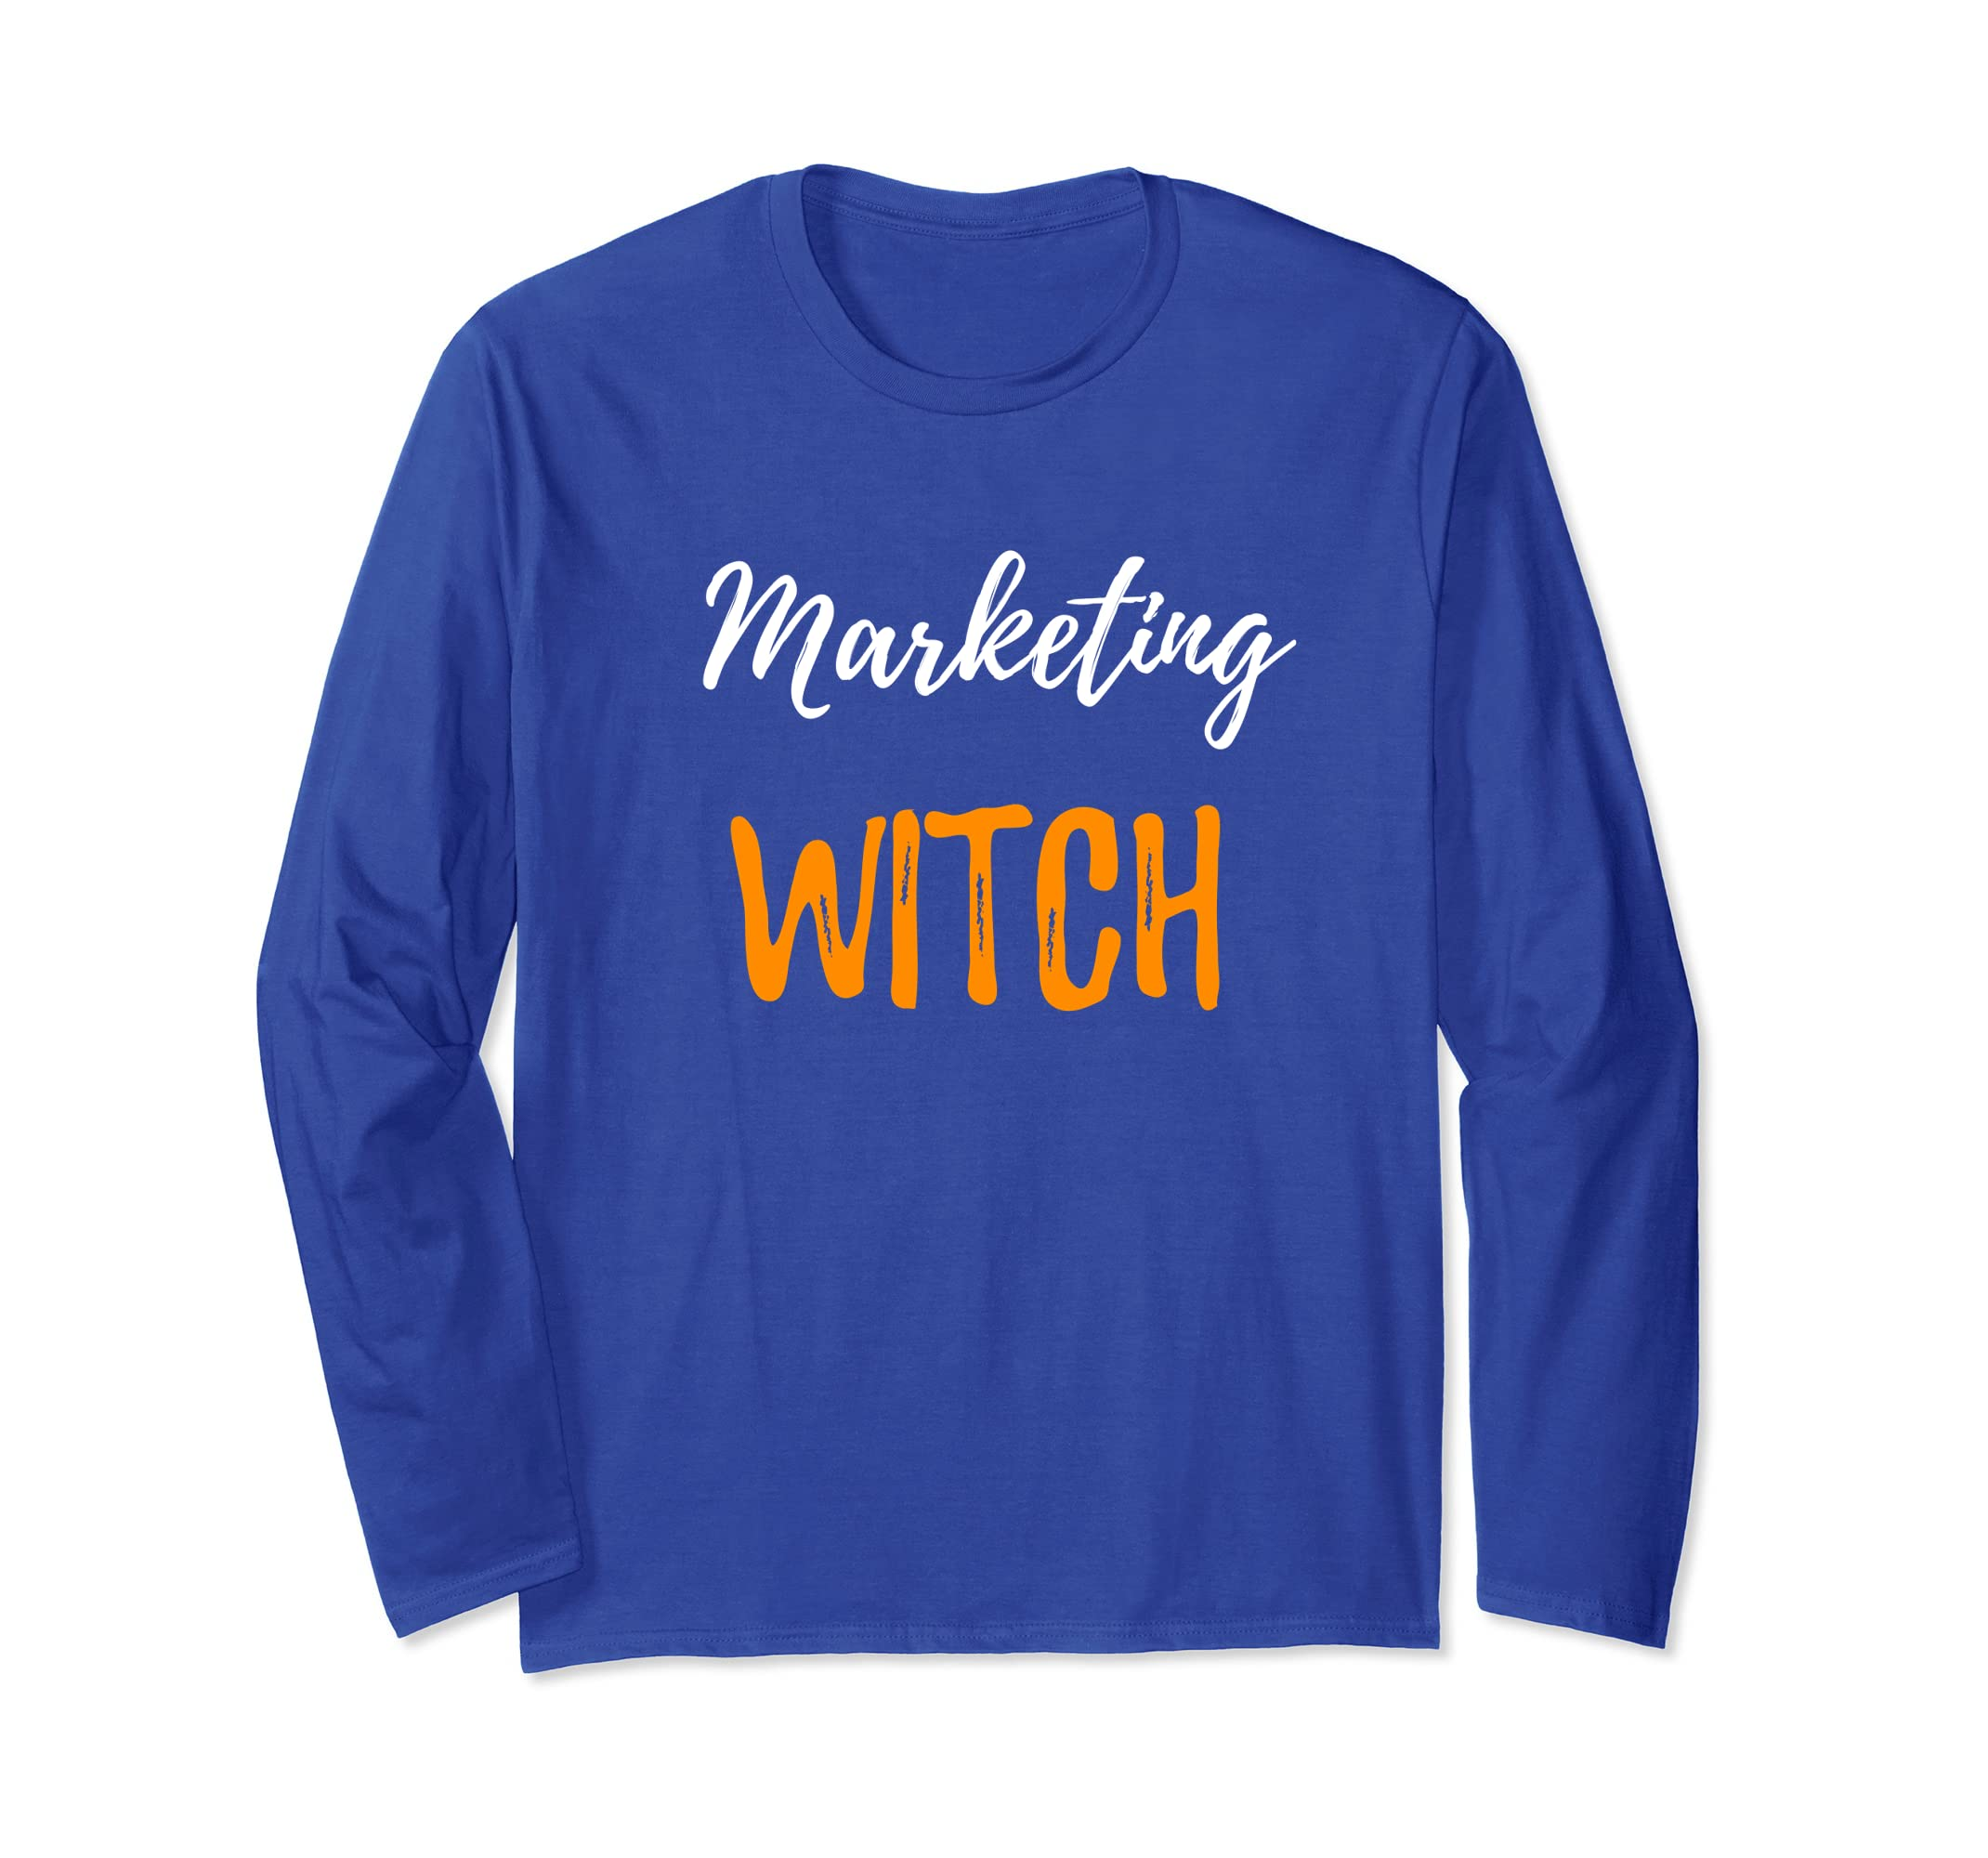 Marketing Witch Long Sleeve Shirt Funny Halloween Gift-Bawle